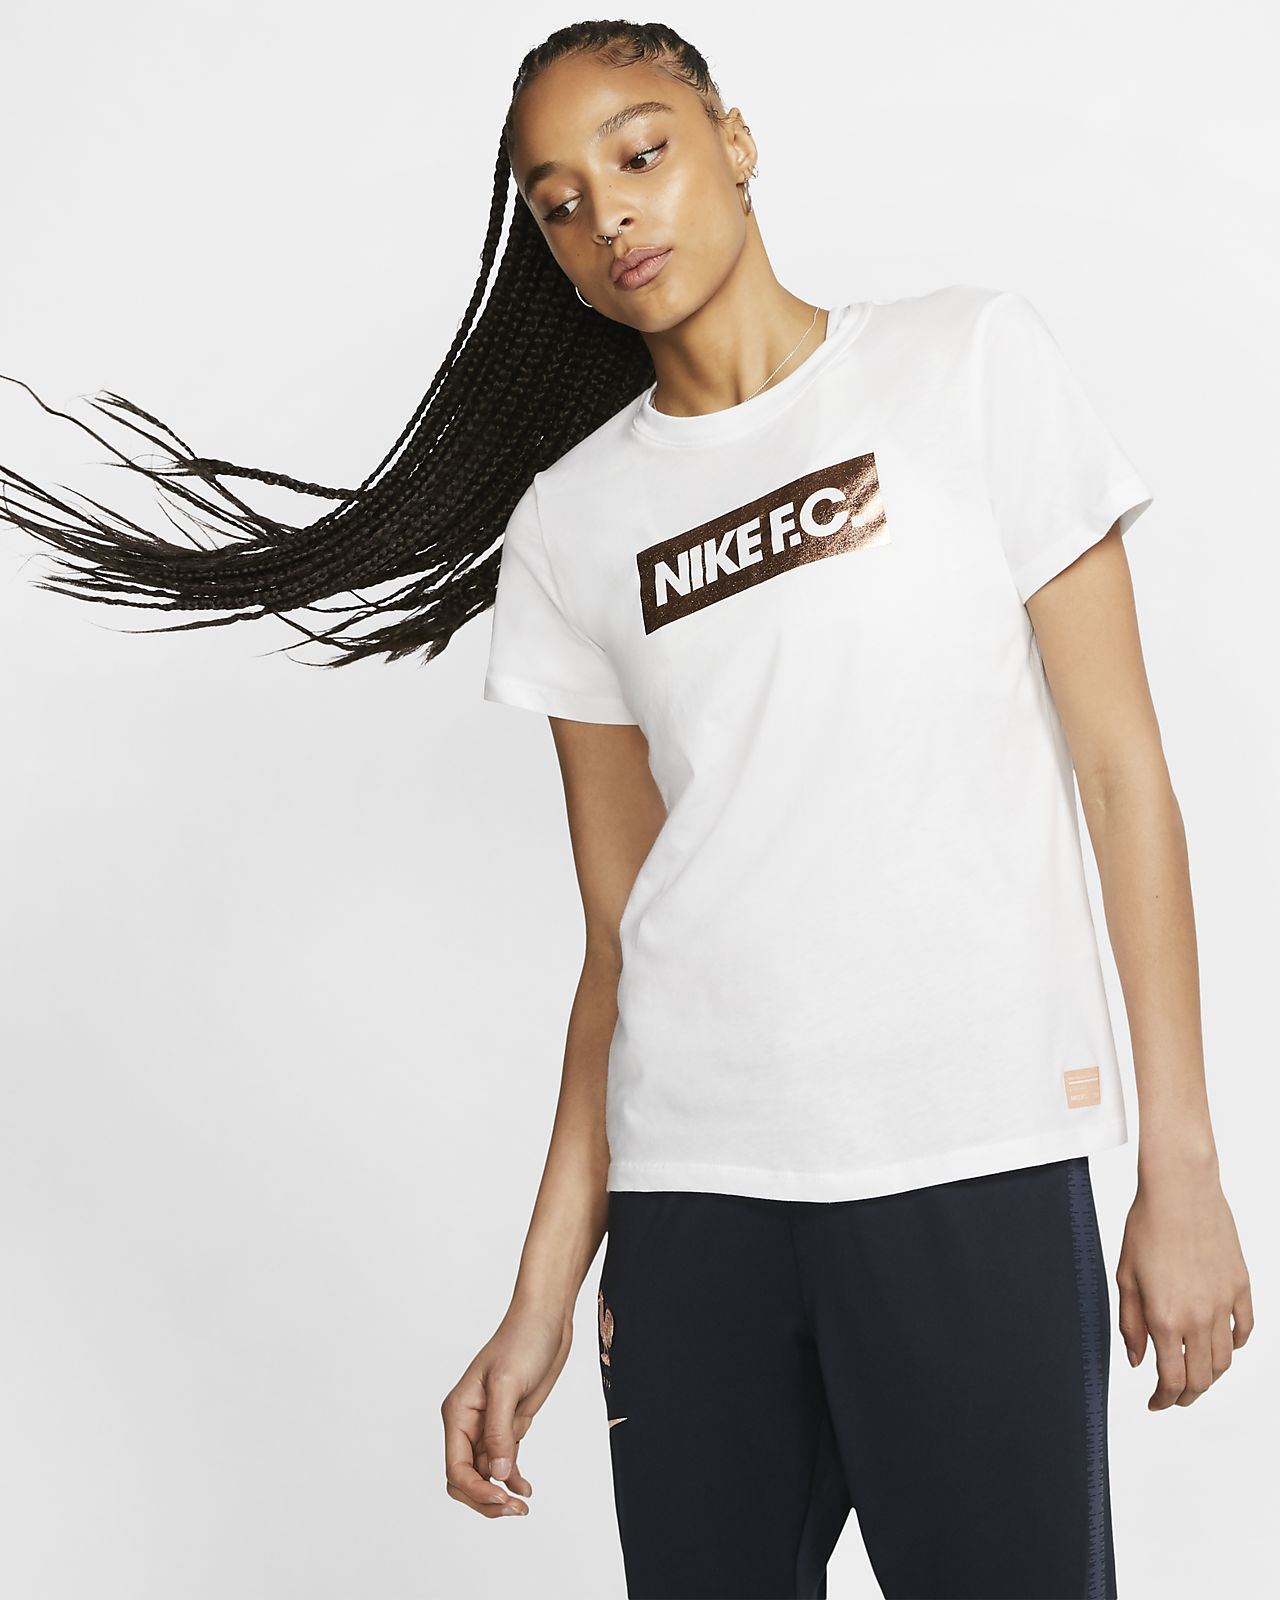 Nike F.C. Women's Football T-Shirt